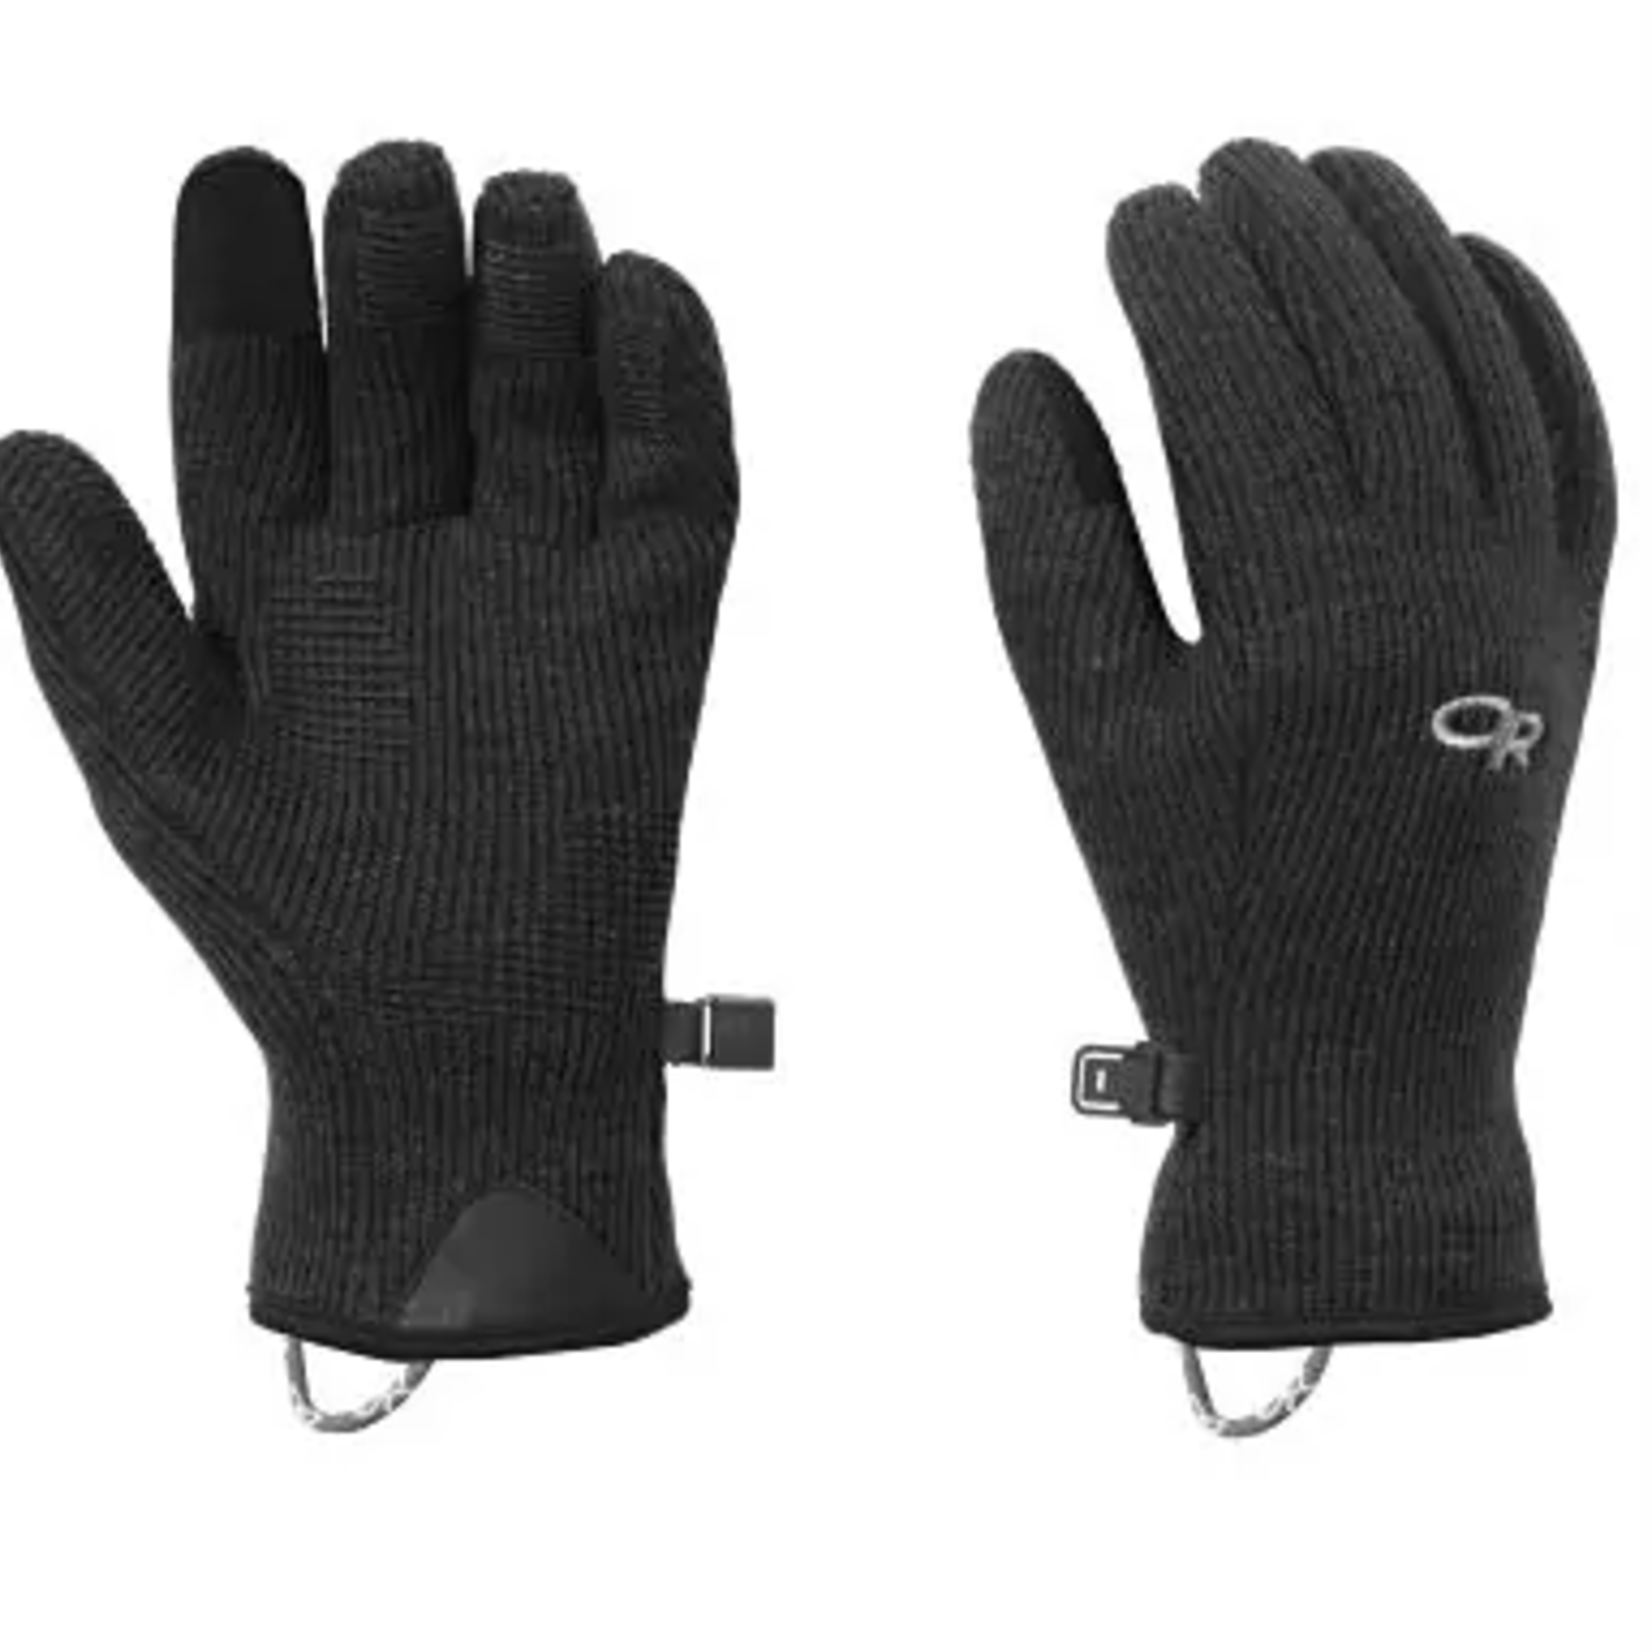 Outdoor Research Outdoor Research W's Flurry Sensor Gloves